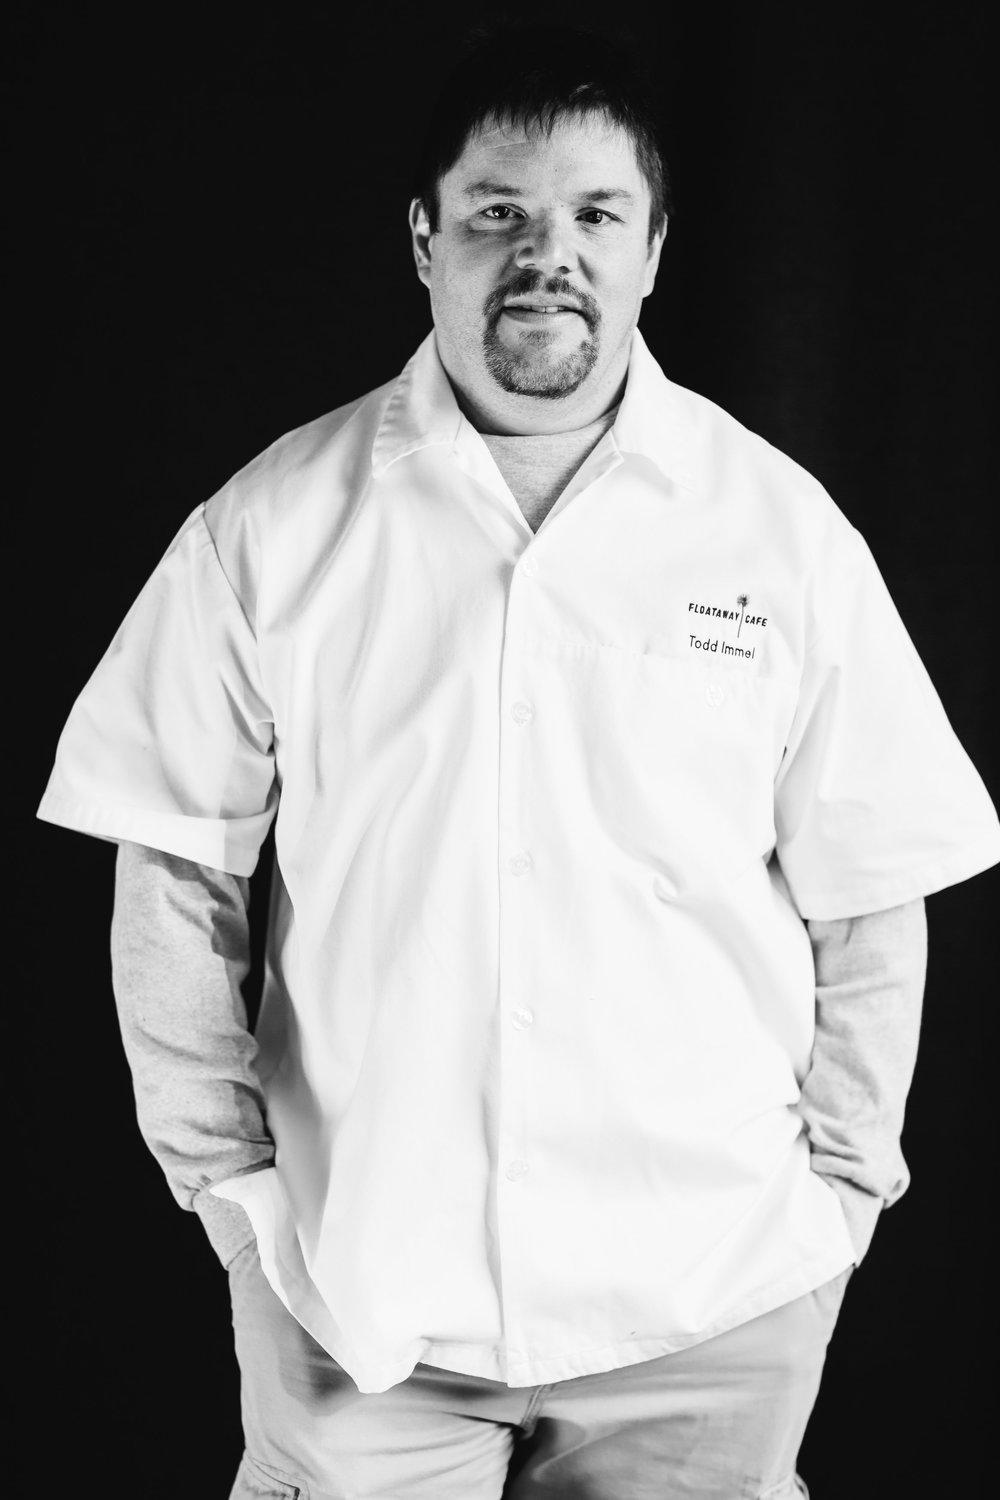 Todd Immel, Executive Chef